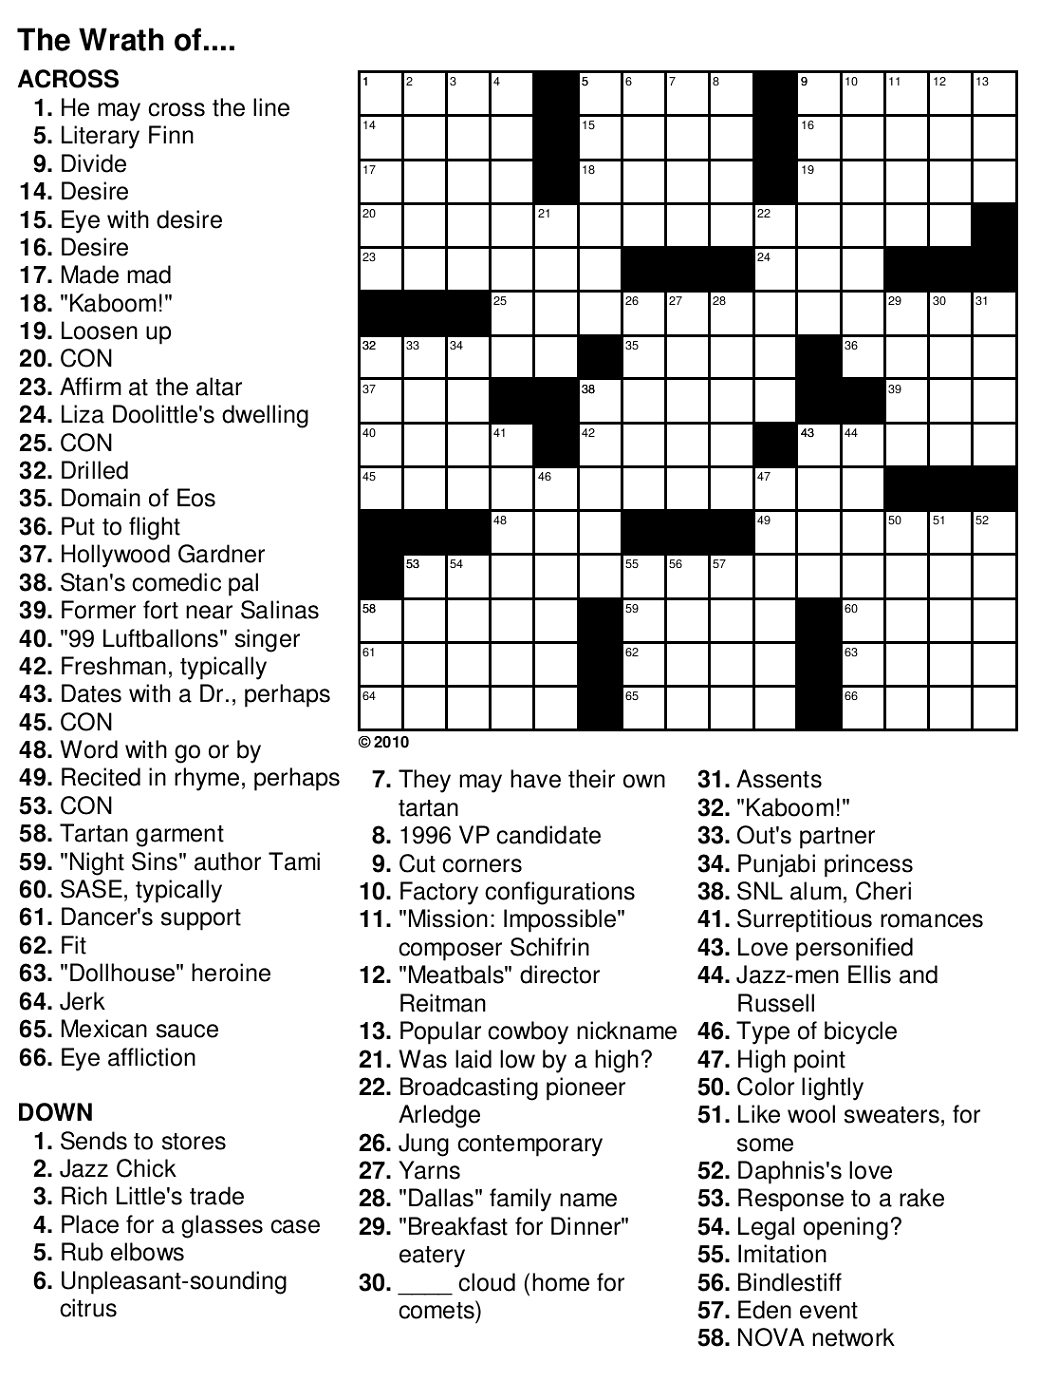 Easy Crossword Puzzles For Seniors | Activity Shelter - Simple Crossword Puzzles Printable